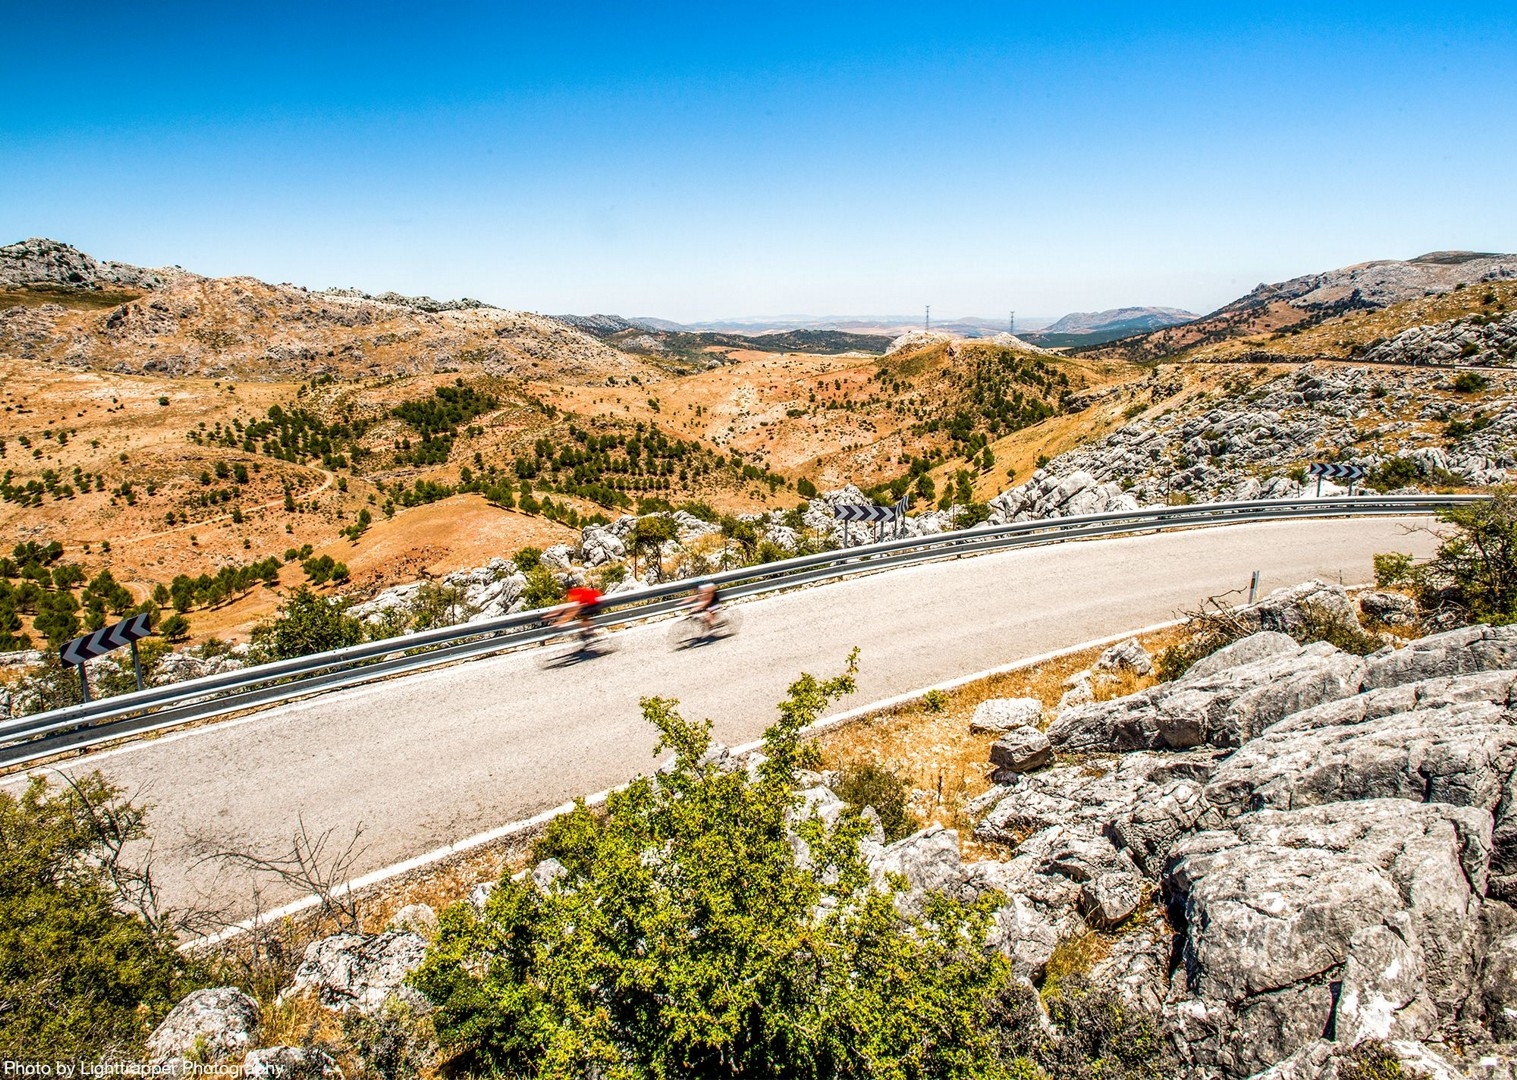 riding-in-spain-guided-road-cycling-holiday-north-to-south-16-days.jpg - Spain - Basque Country to Andalucia - North to South (16 Days) - Guided Road Cycling Holiday - Road Cycling